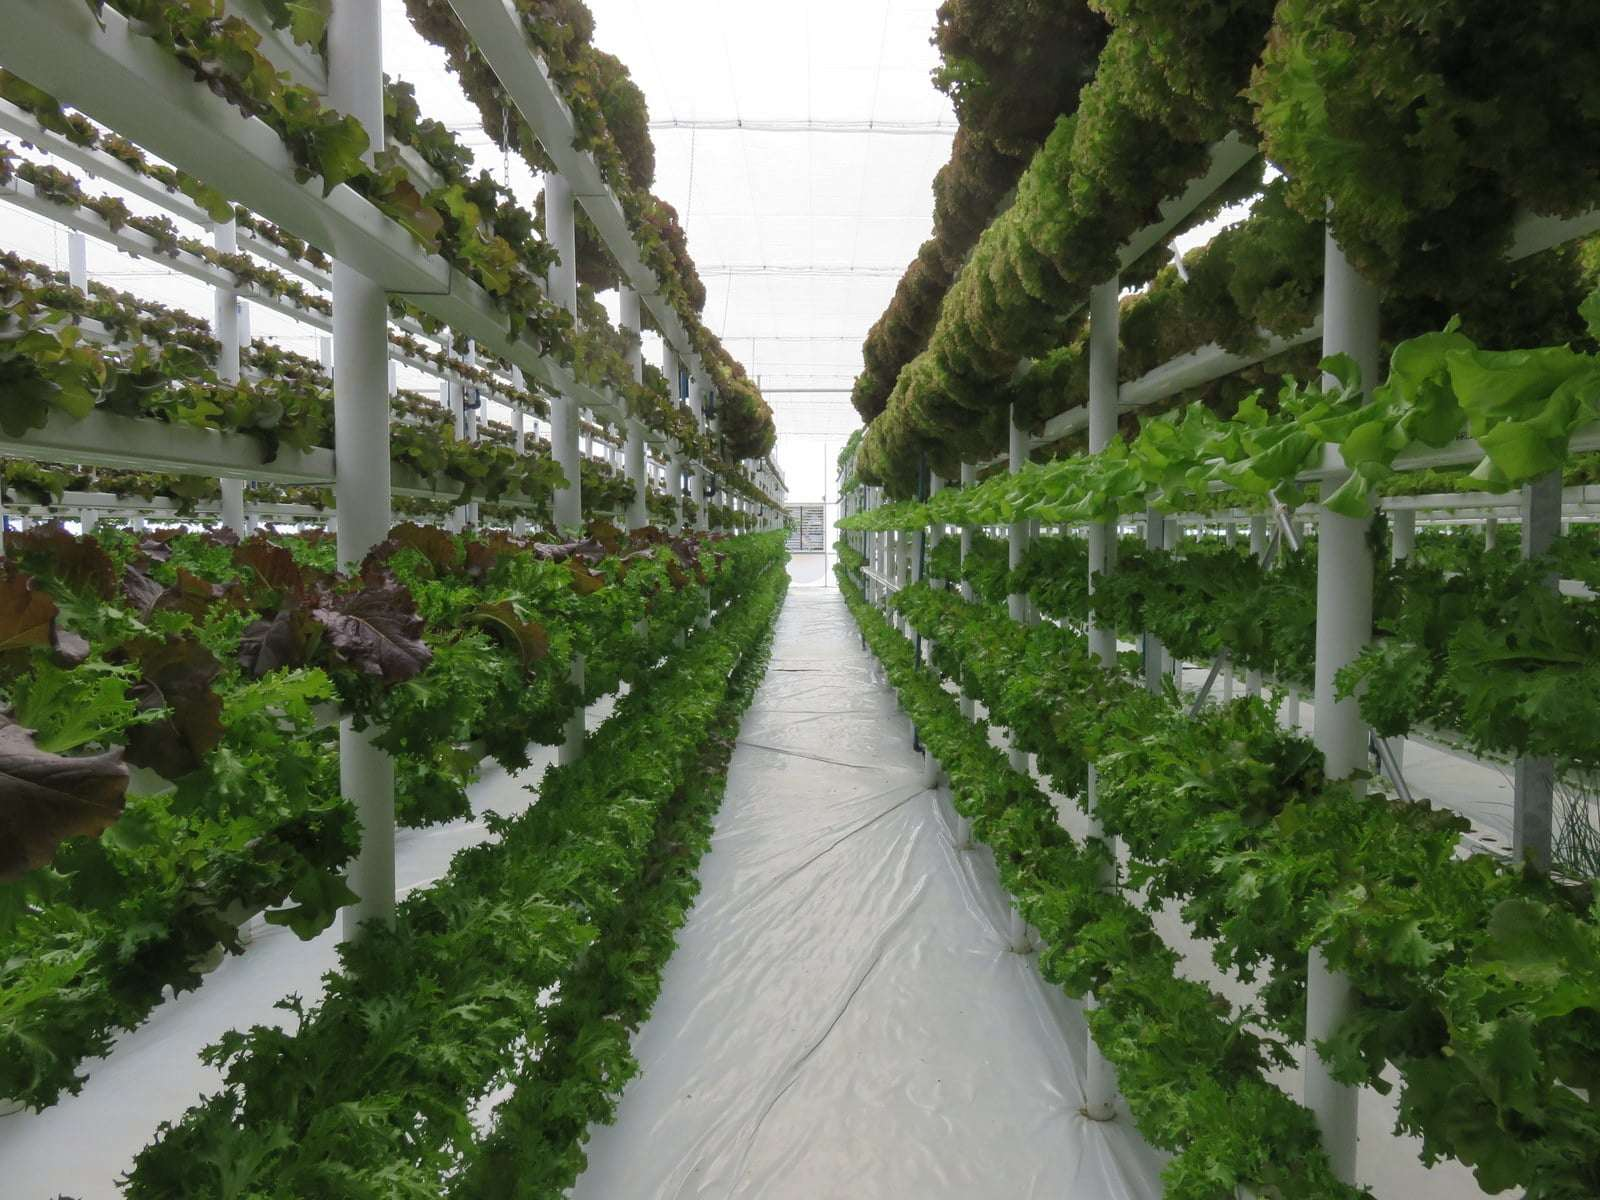 Hydroponic Lettuce Project, Greendrop Farms, Joostenberg